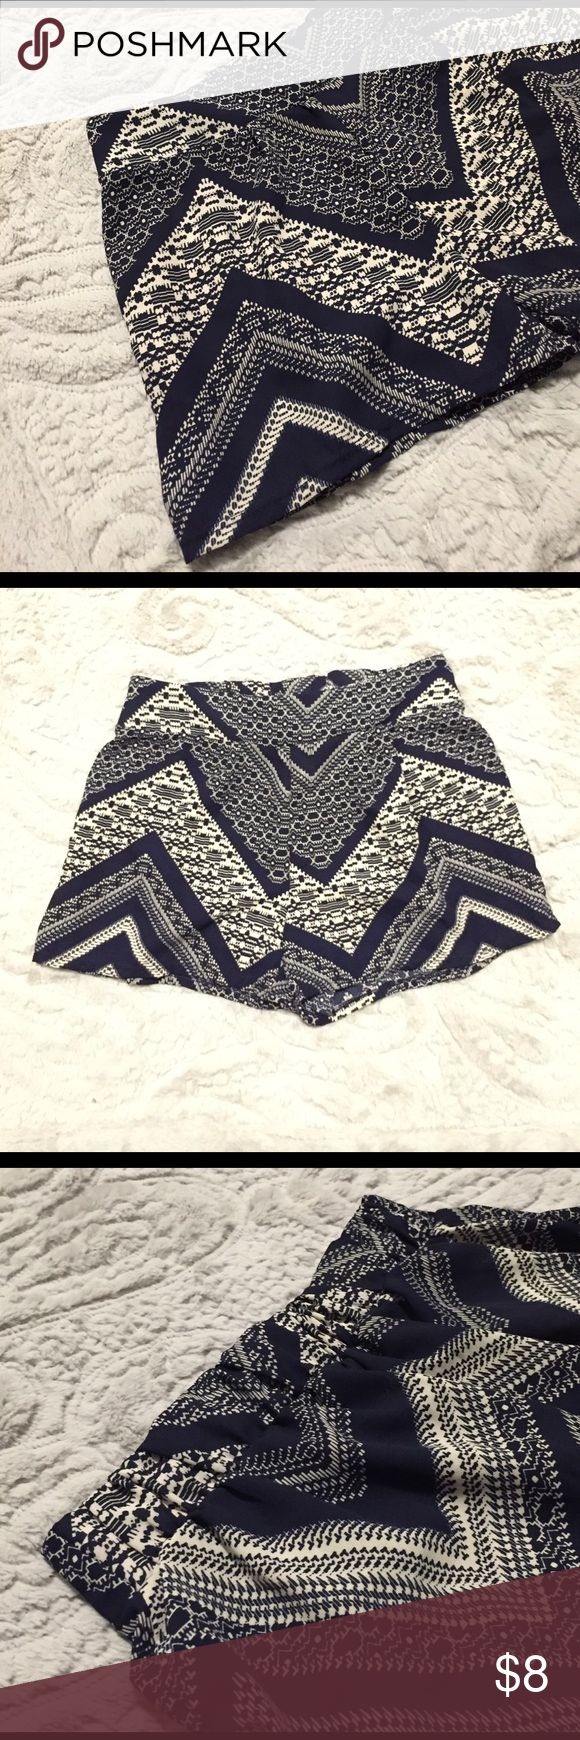 Body Central abstract chevron Polyester shorts Body Central abstract chevron Polyester shorts. No size tag but they are a small. These were gifted to me by the buyer for Body Central so they were used as a prototype. So cute and lightweight, just don't fit me... snag these for your spring break vaca! Body Central Shorts